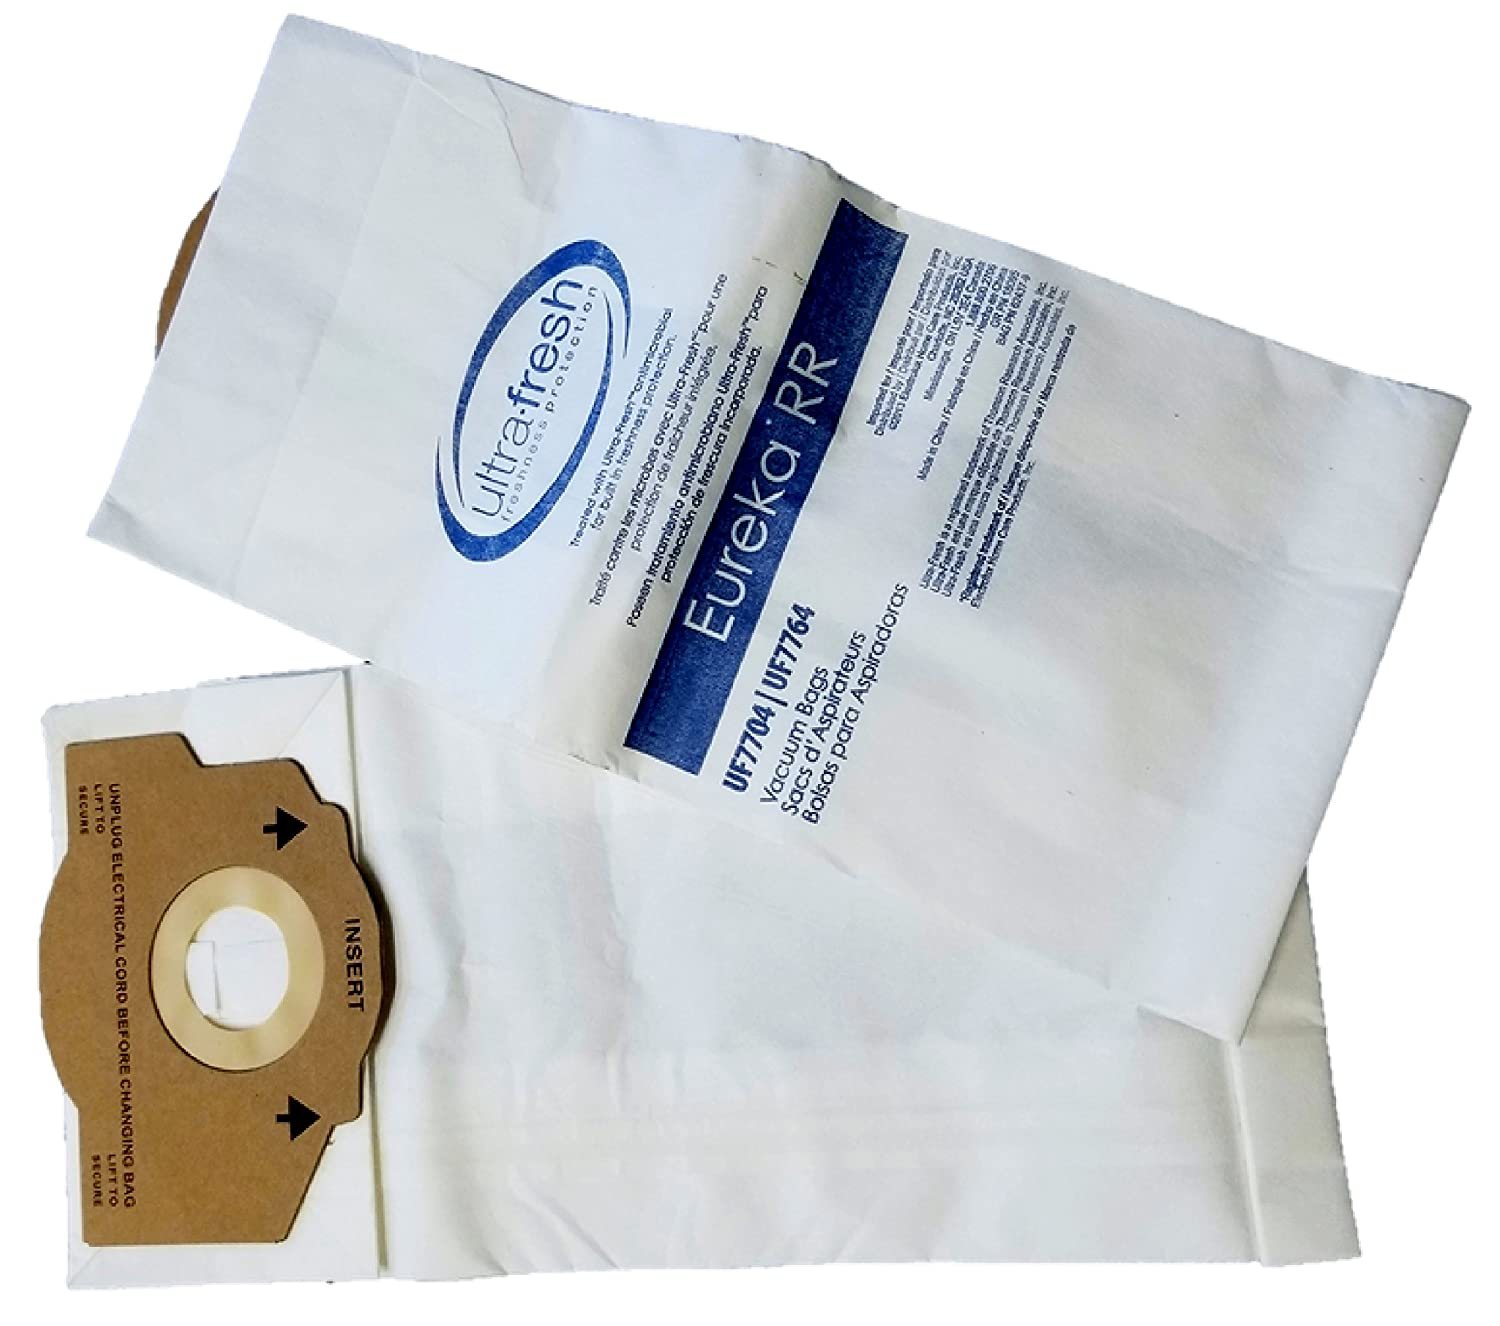 63295A Compare To Part # 61115 12 Eureka Style RR Vacuum Bags Designed to Fit Eureka Boss 4870 Series Upright Vacuums 61115B 61115A 62437 by Electrolux Home Care Products Inc.